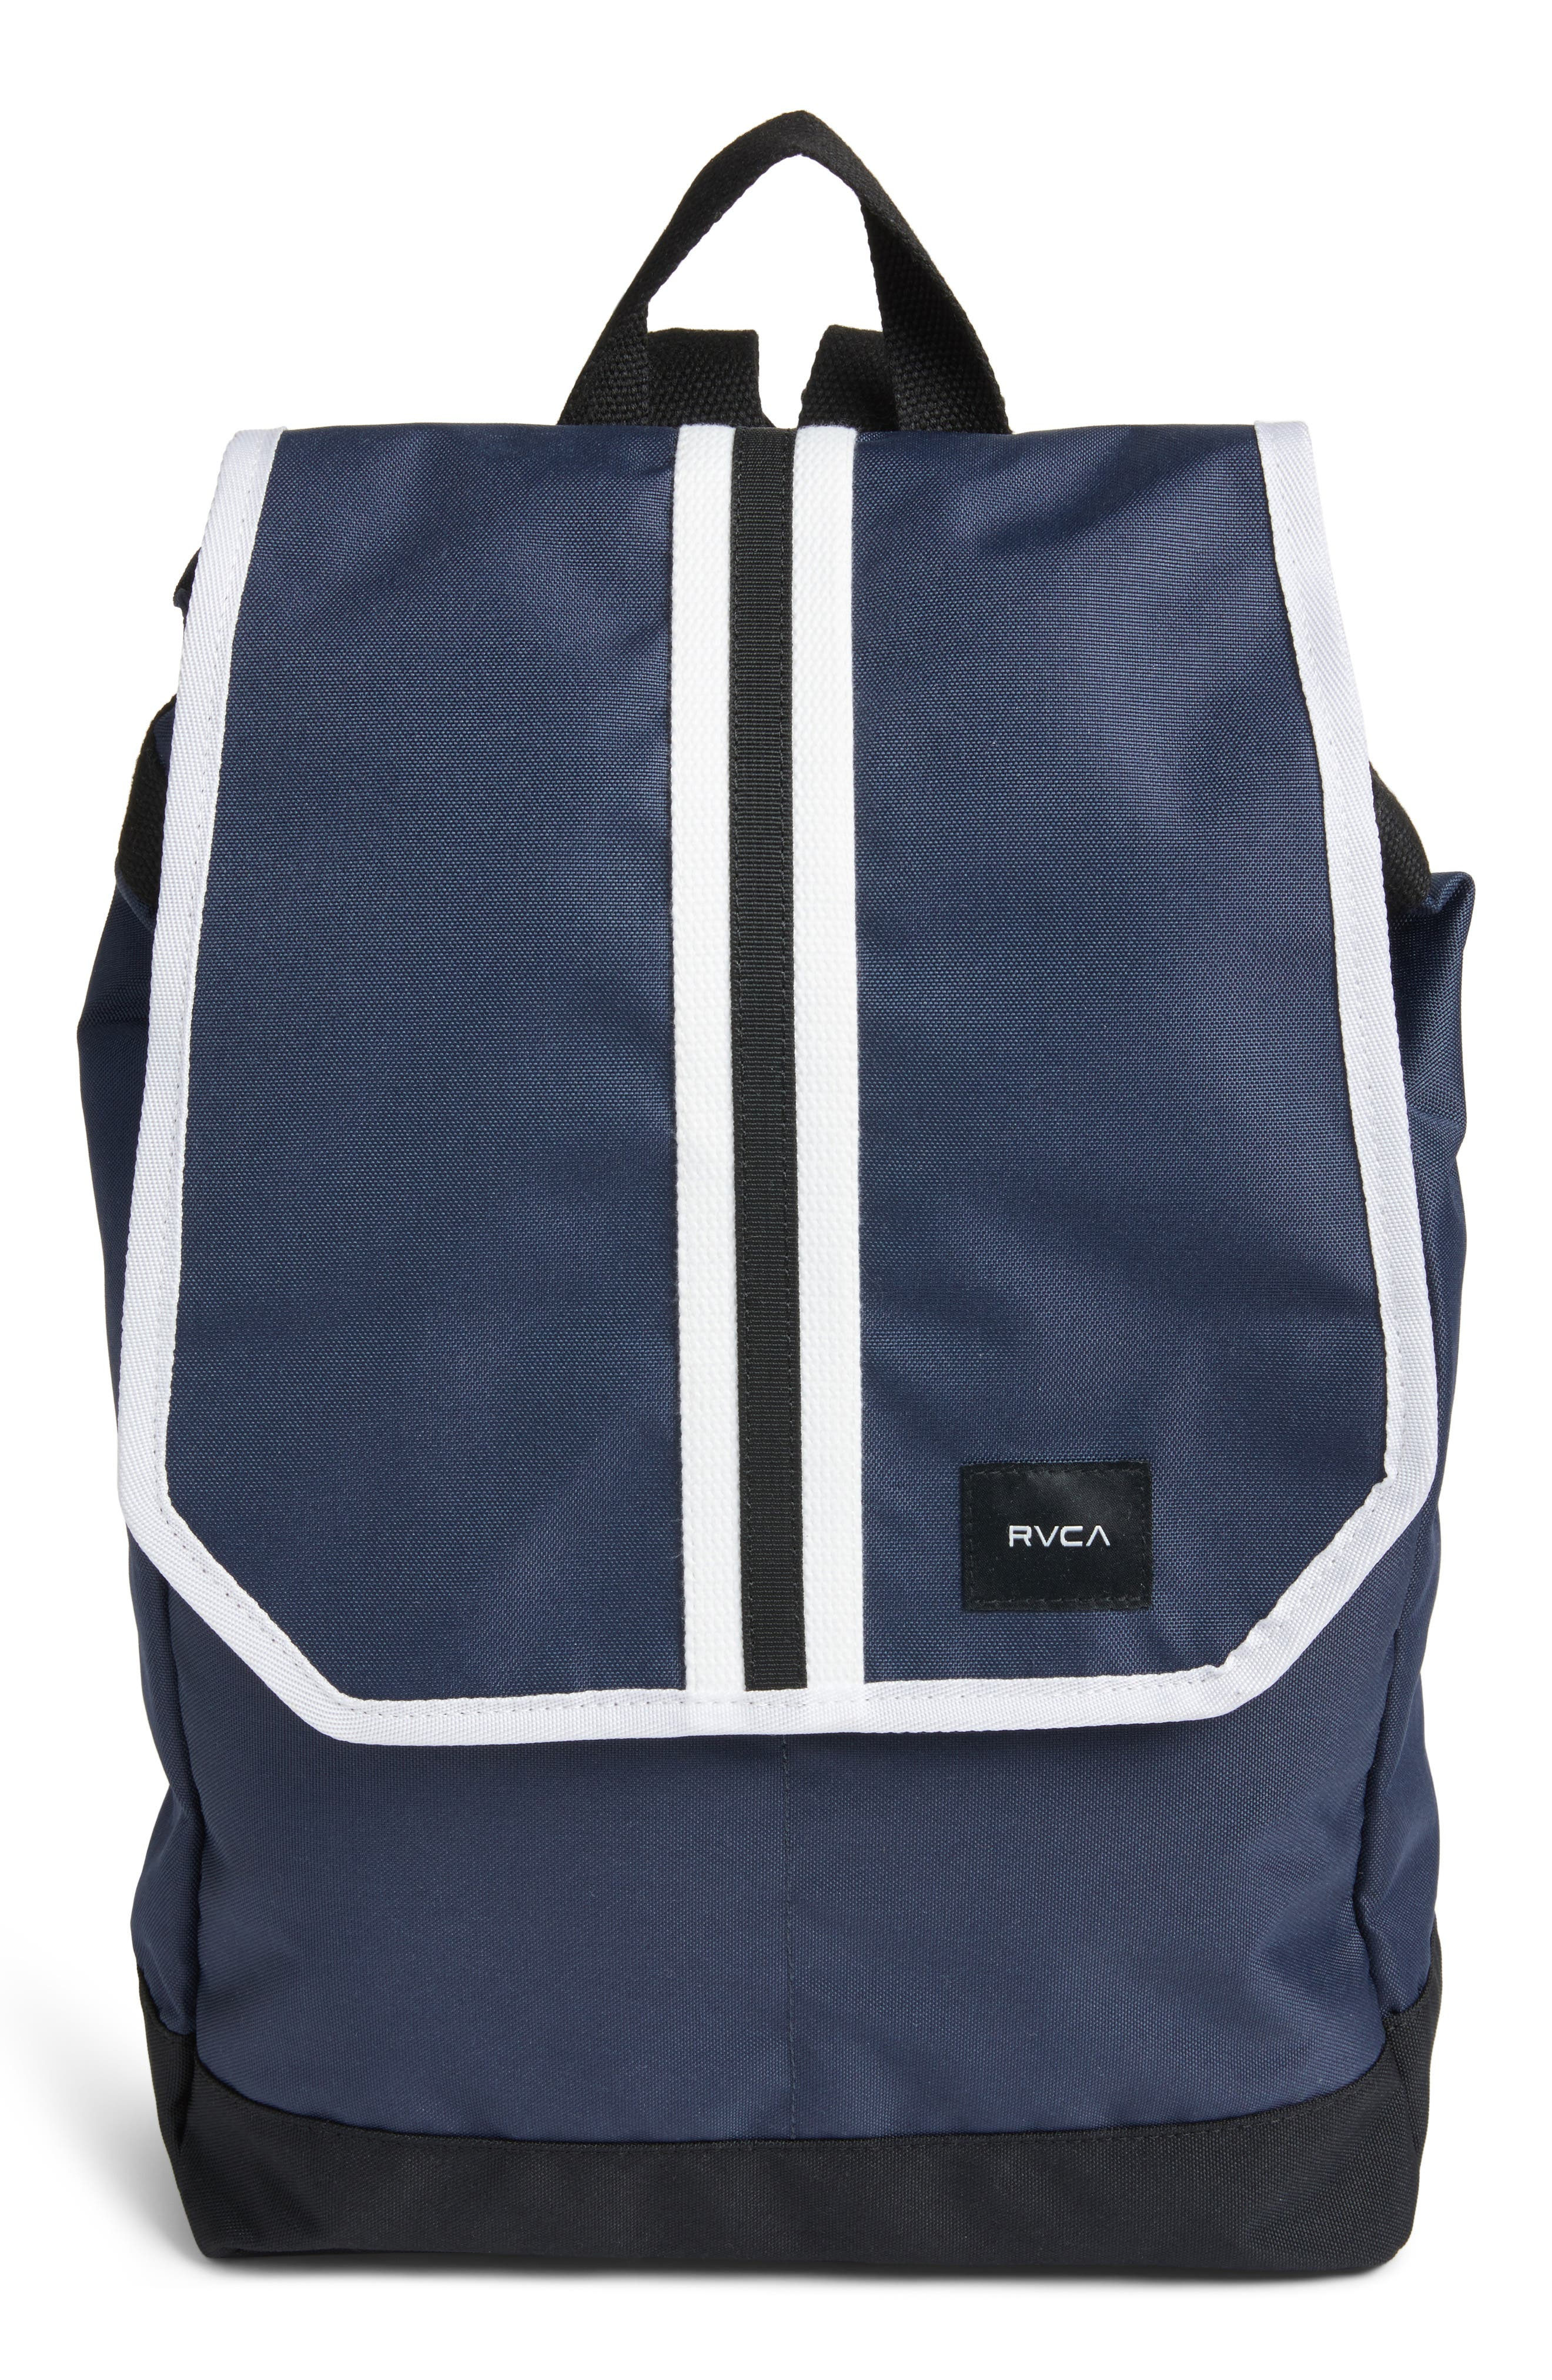 RVCA Dazed Backpack